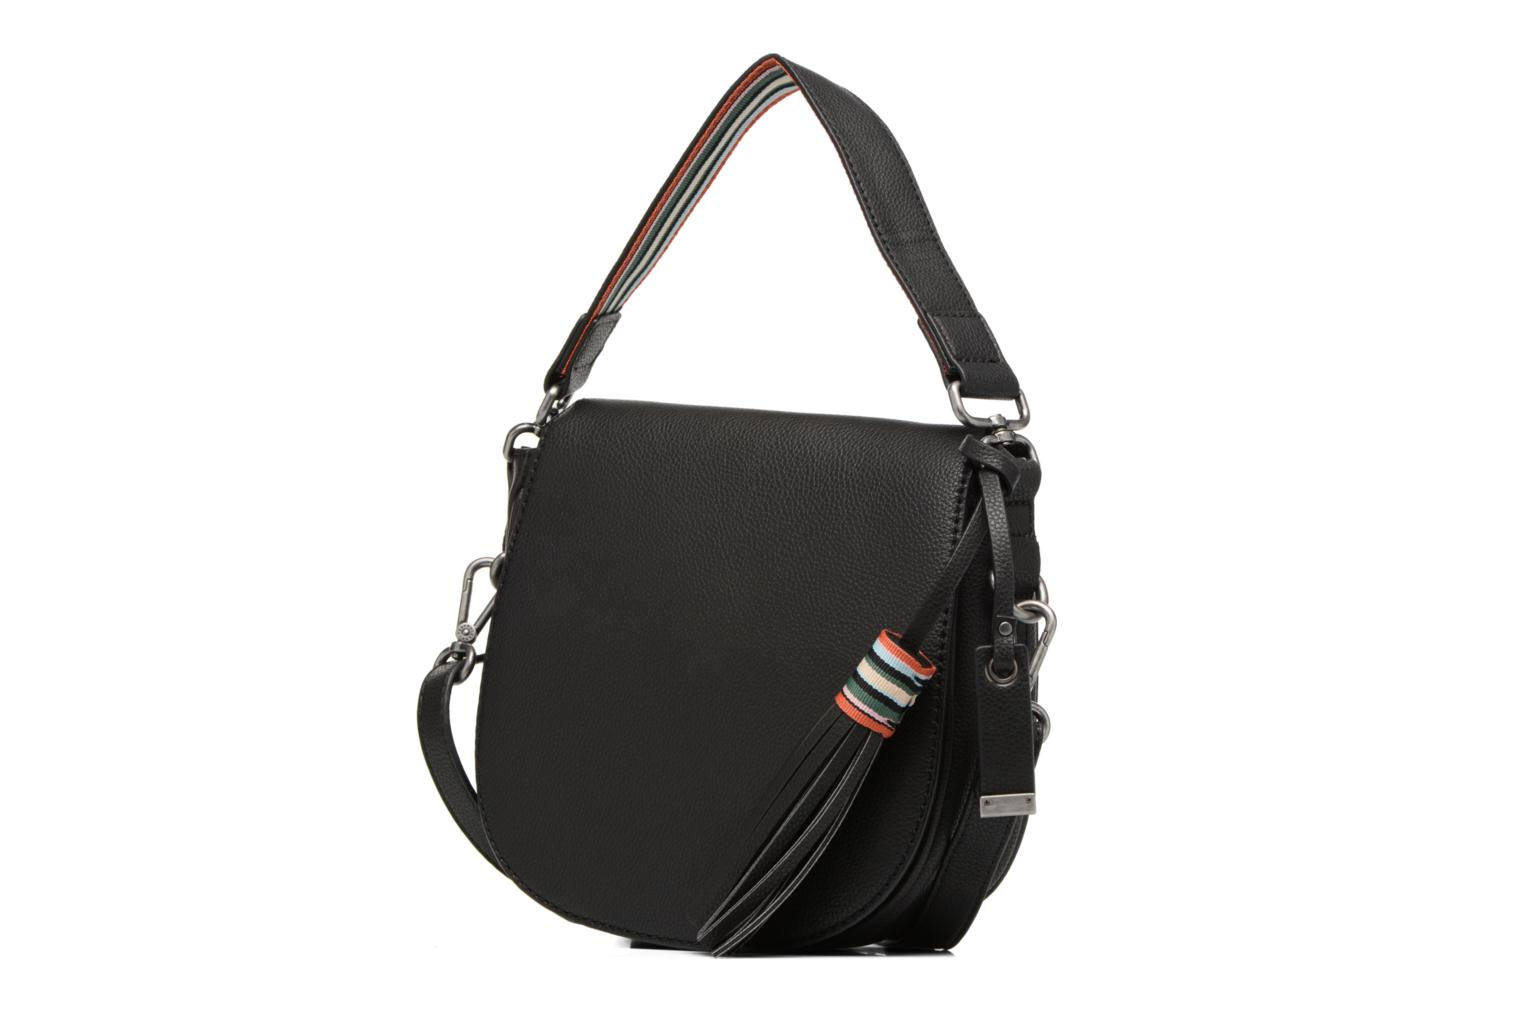 Wendy Saddle bag Black